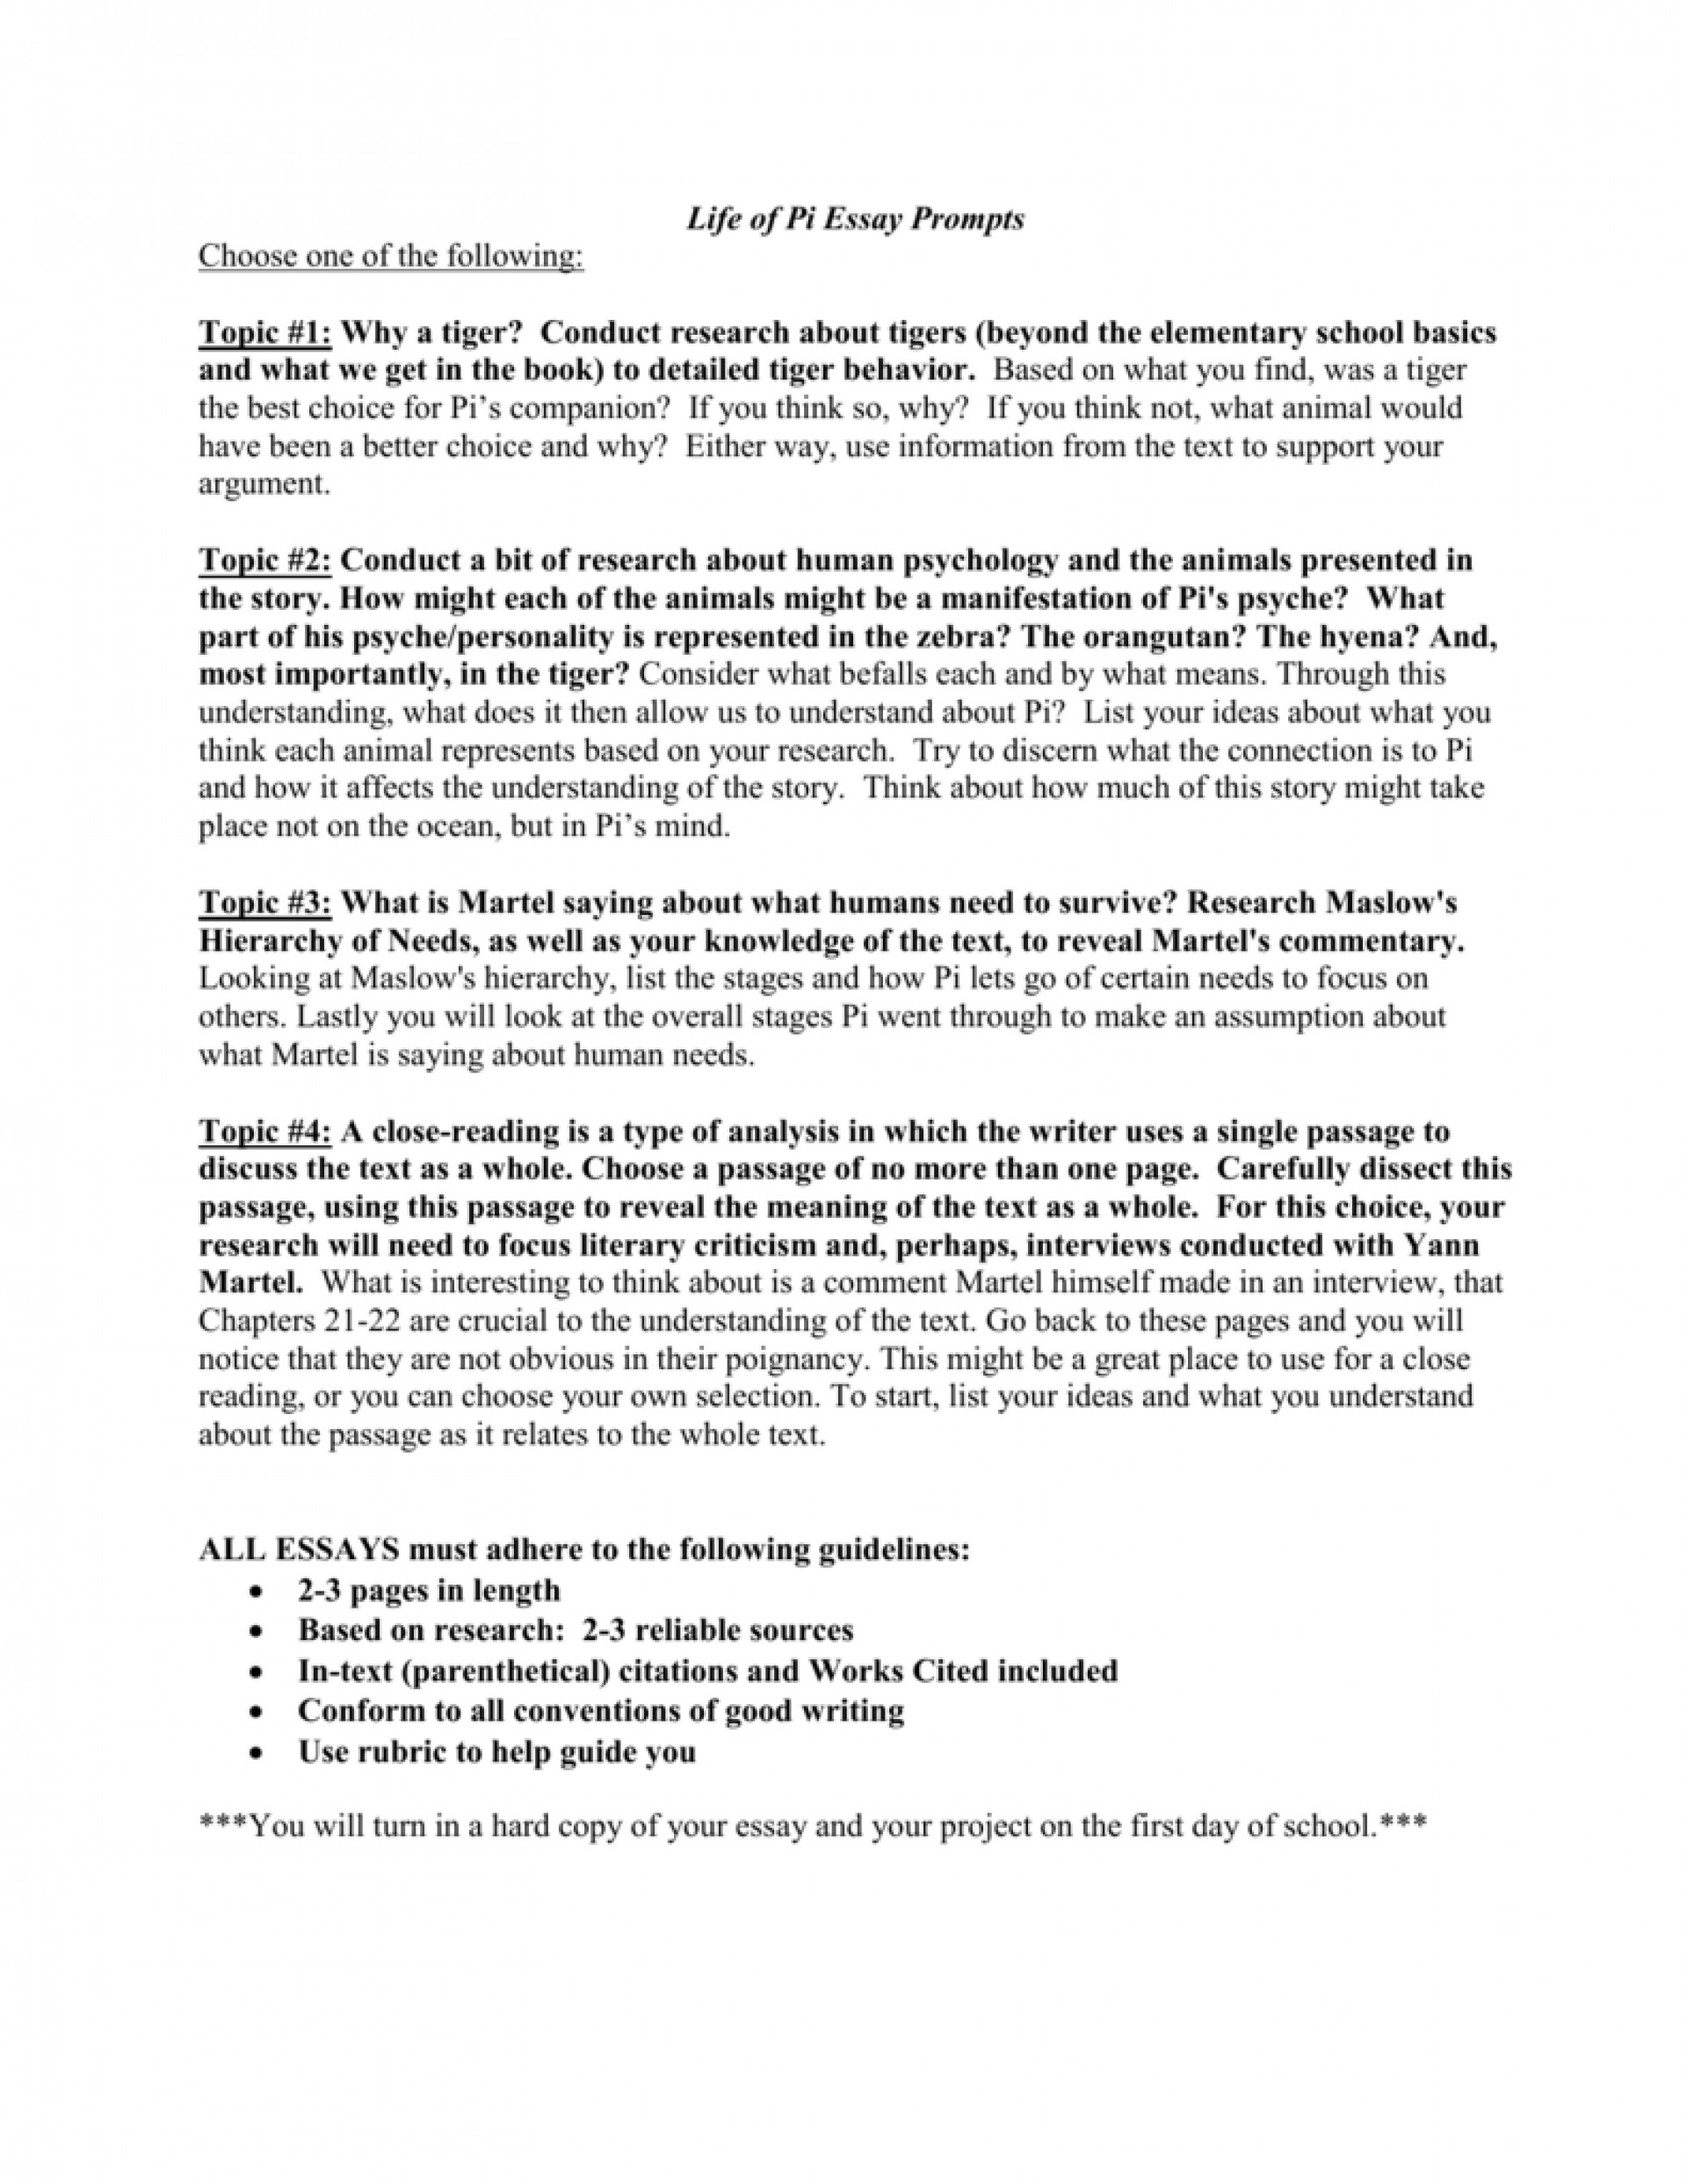 002 Essay Topics For Life Of Pi 008658963 1 Incredible Research Paper Prompts Writing 1920